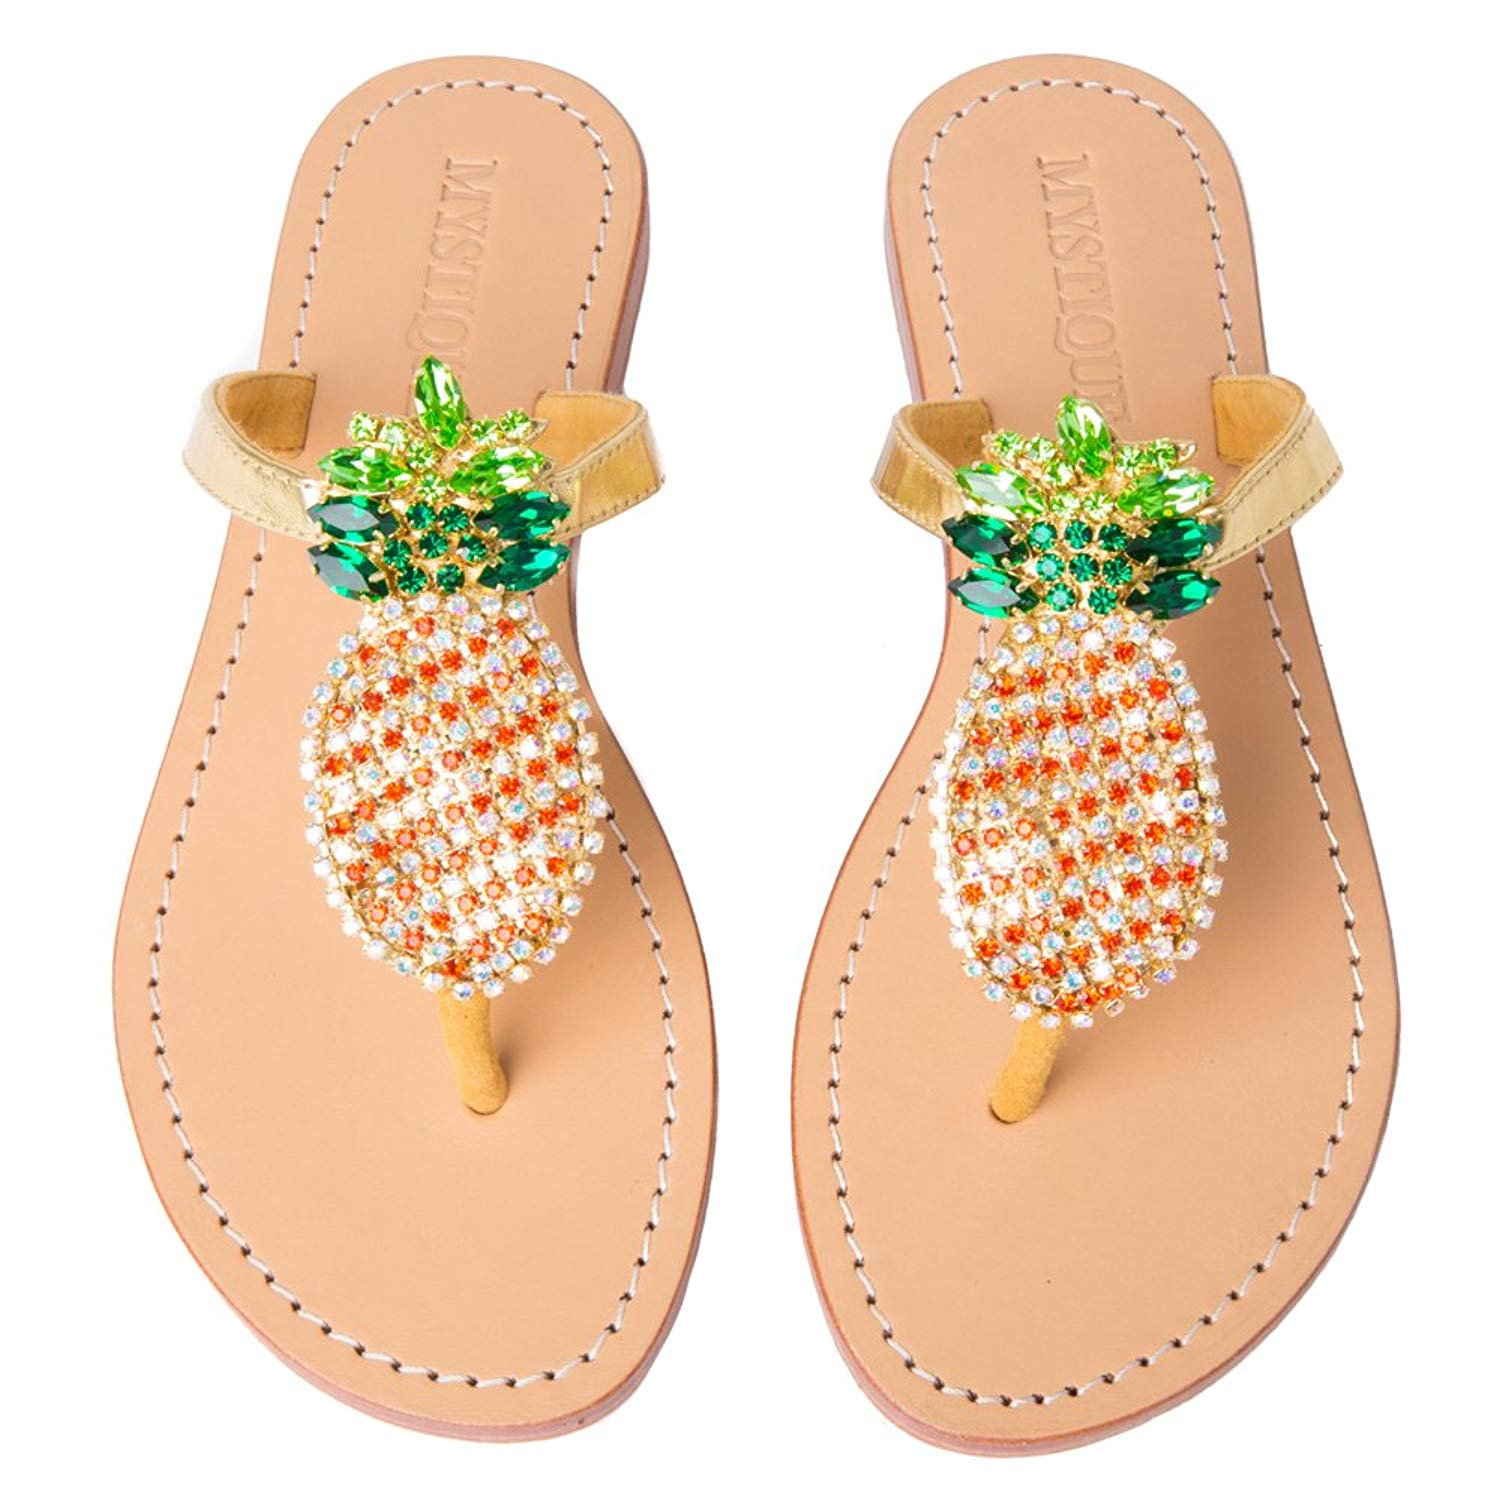 51d7a0a53 Get Quotations · Mystique Original Genuine Leather Handmade Rhinestone  Pineapple Jeweled   Embellished Women s Leather Thong Flat Sandals